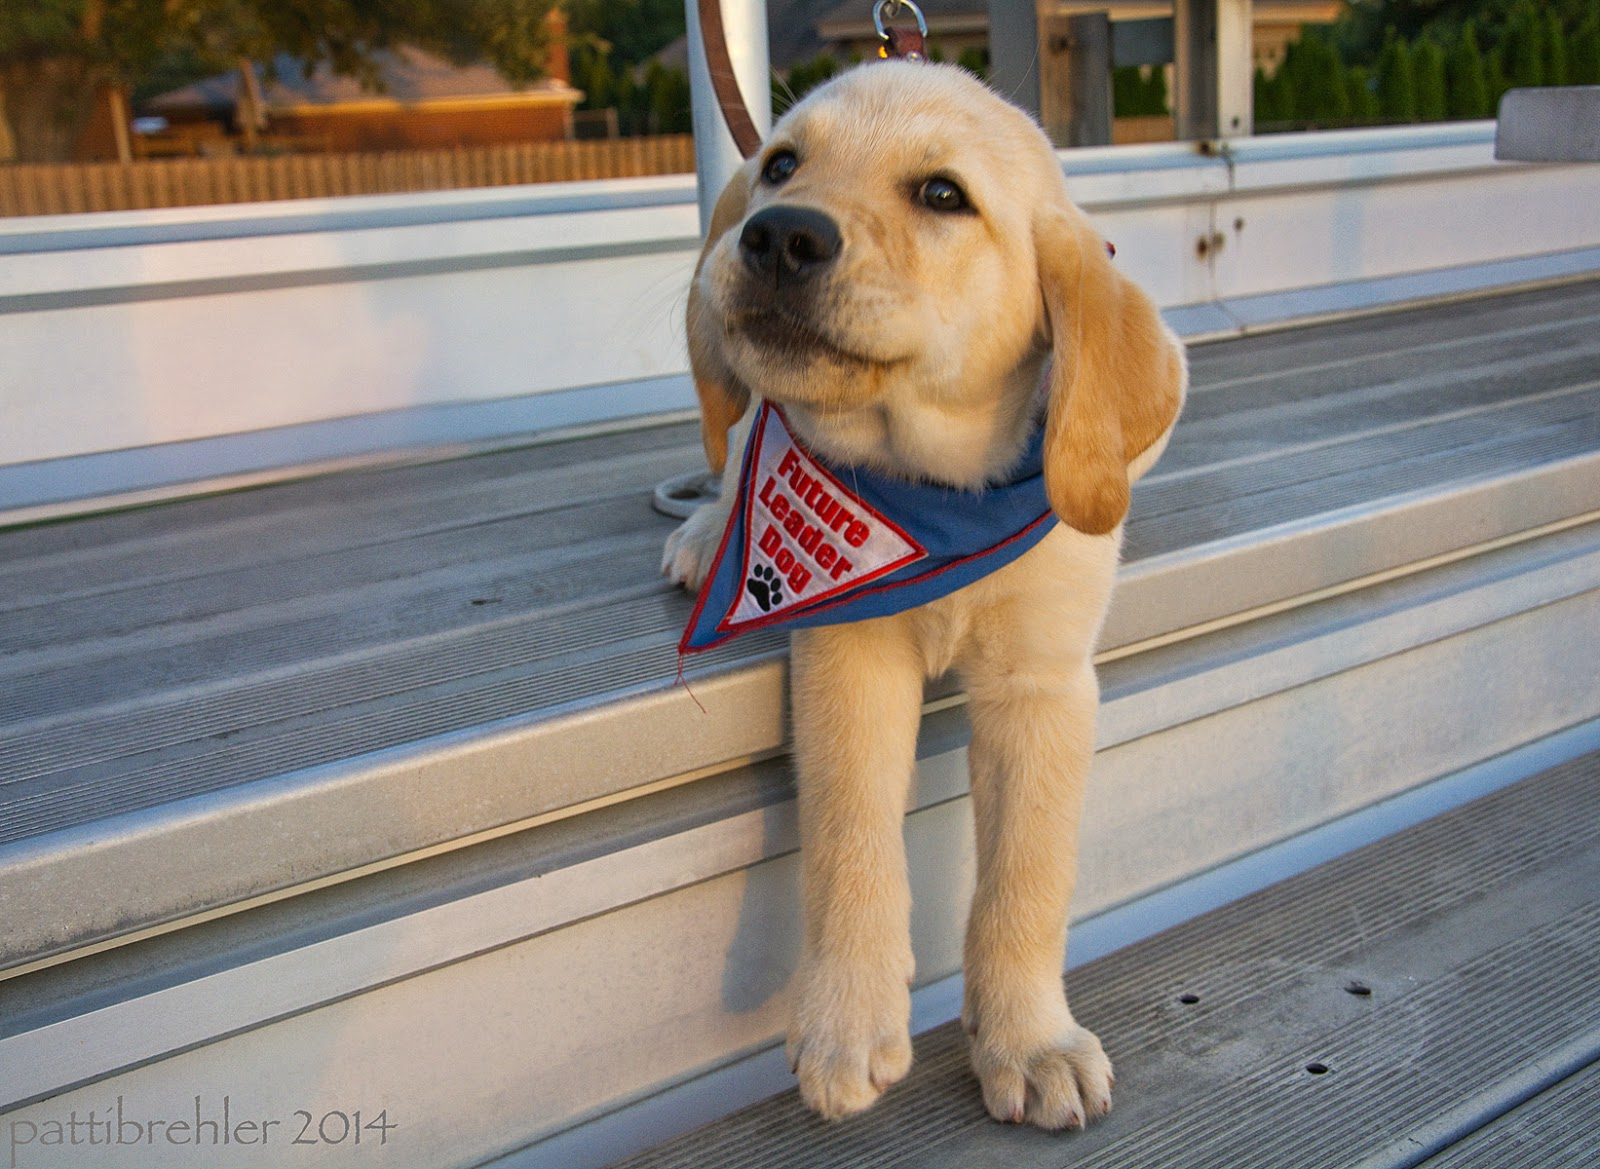 The small puppy is now sitting on the step of the bleacher with his front paws on the step below. He is looking sideways at the camera with a sassy look in his eyes.